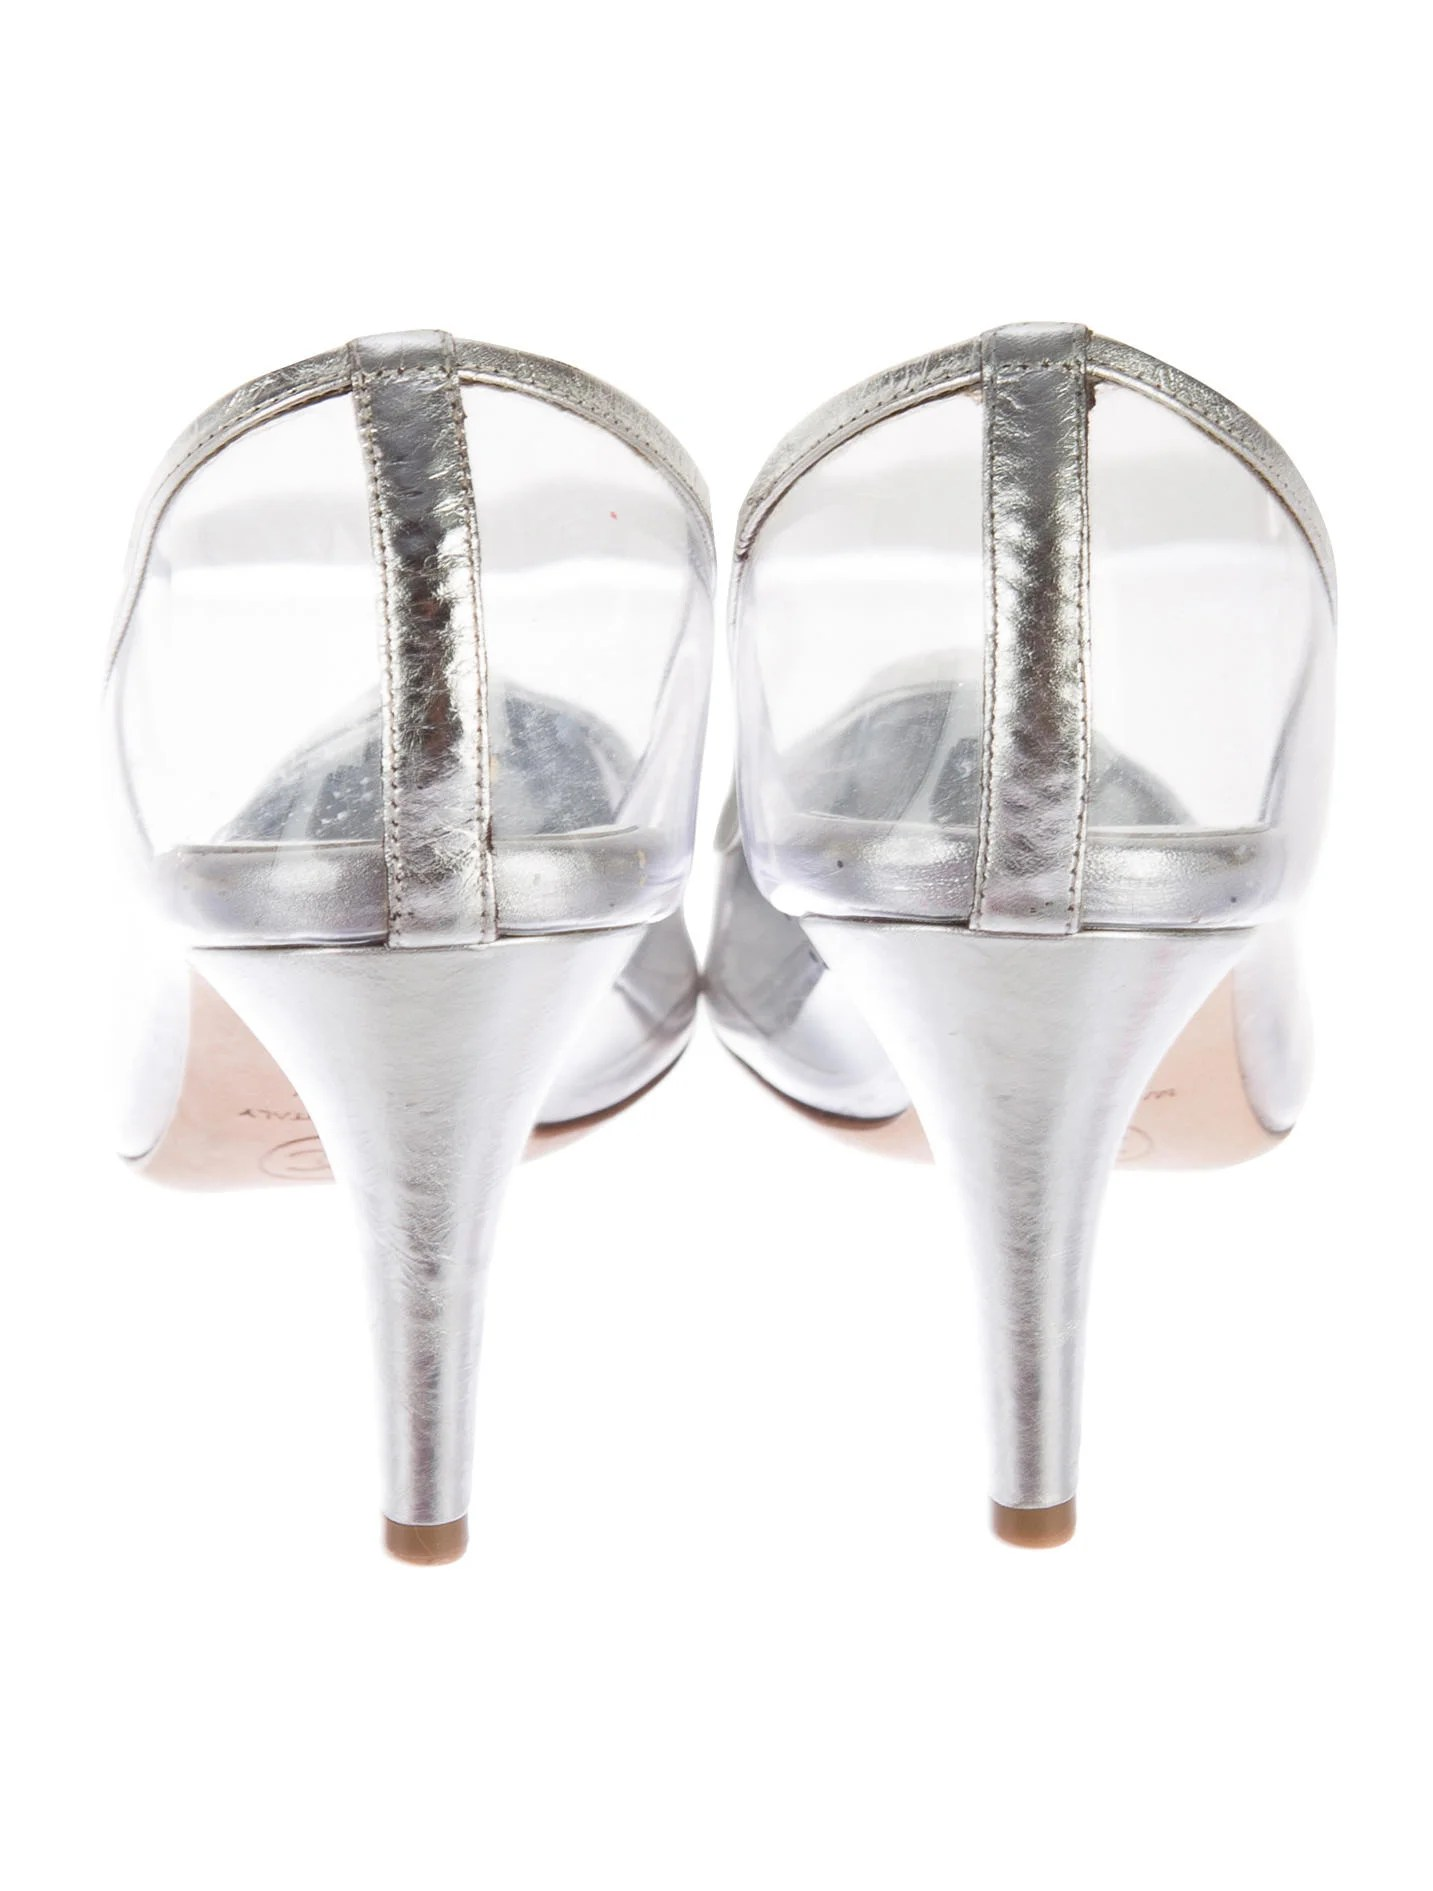 small round kitchen tables essentials calphalon chanel pvc cap-toe pumps - shoes cha134686 | the realreal